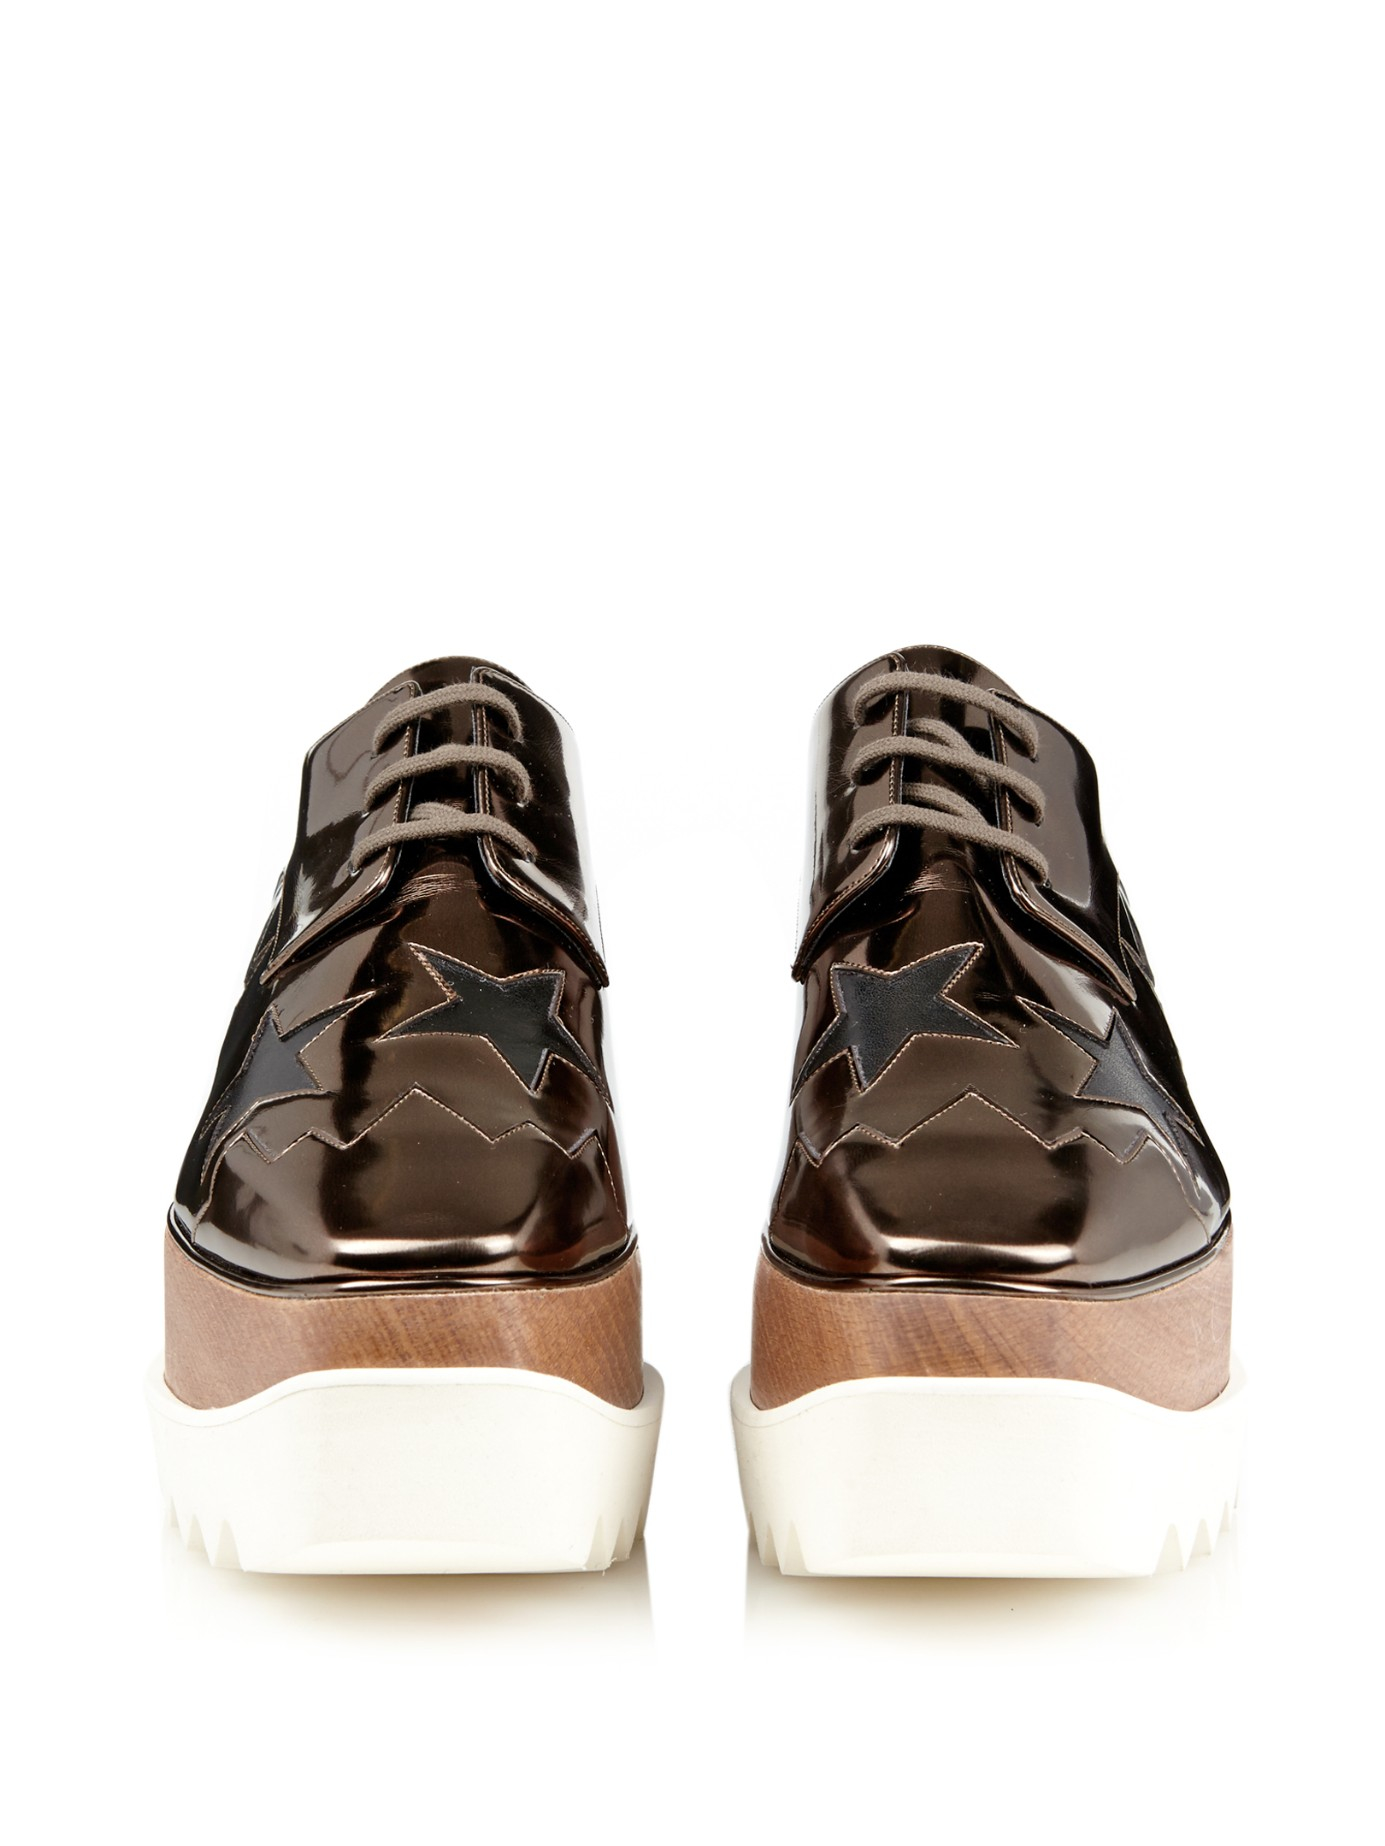 Stella mccartney Elyse Metallic Lace-Up Platform Shoes in Metallic ...